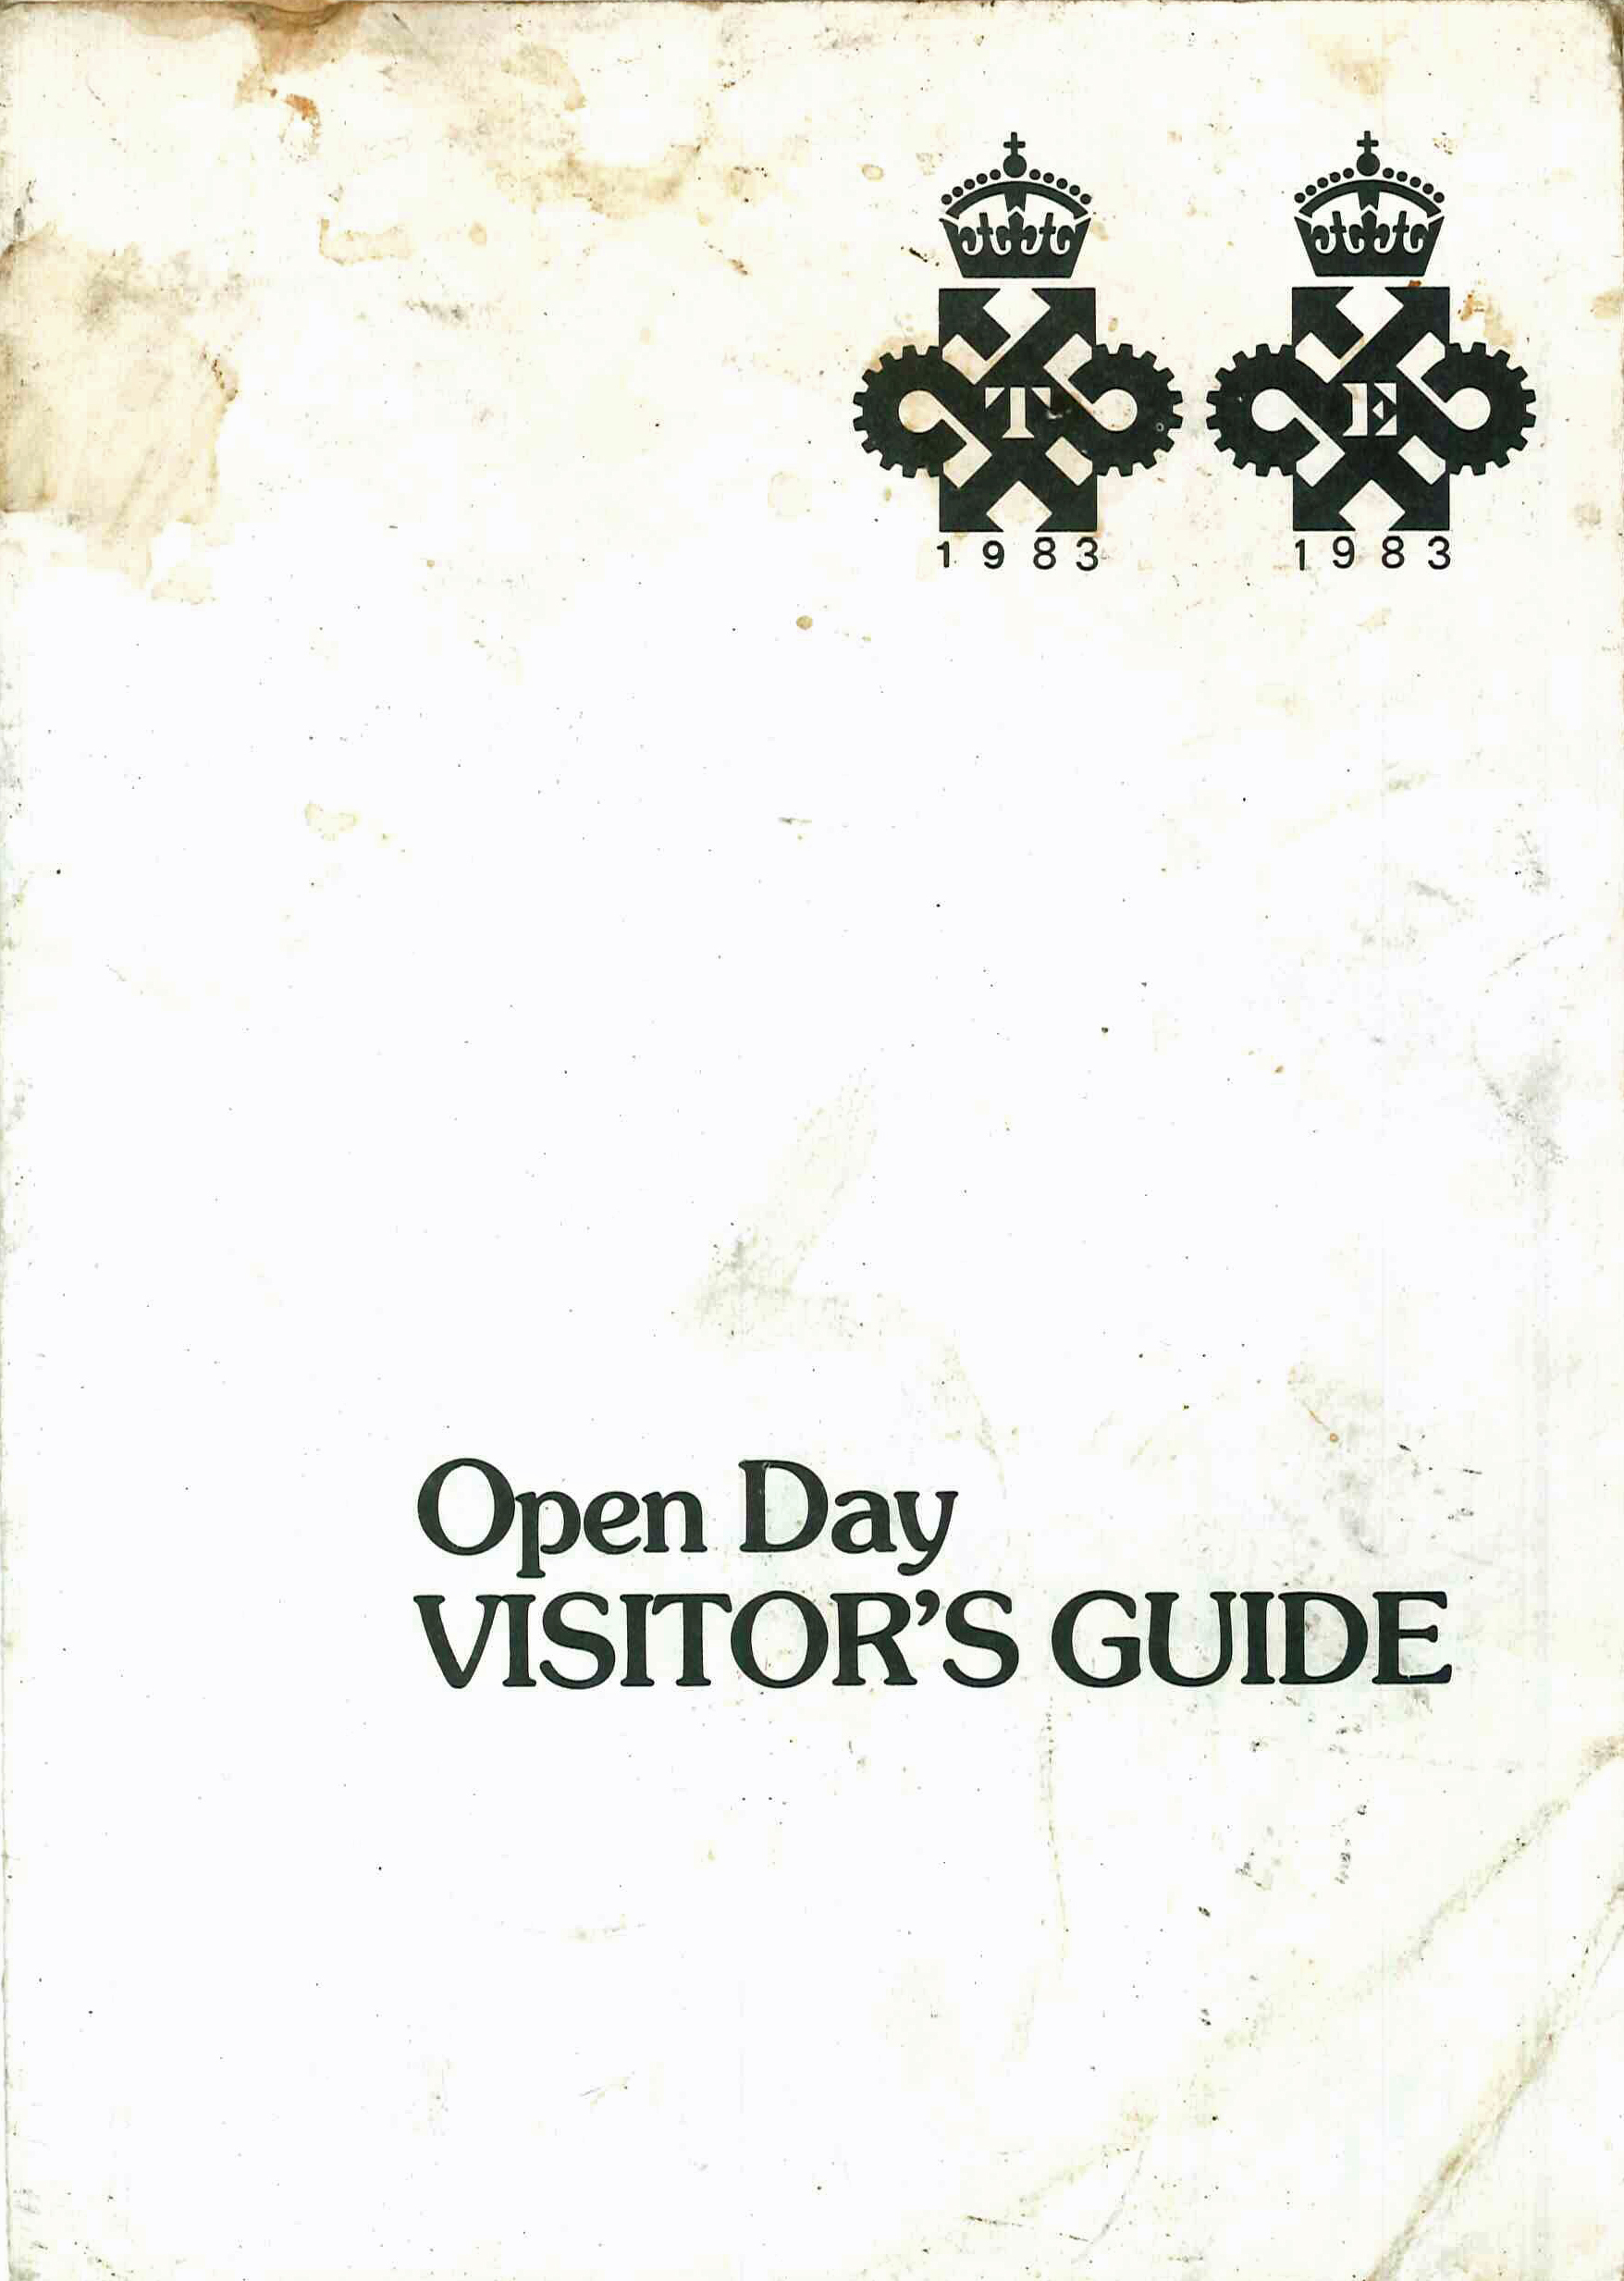 Open Day Visitor's Guide 1983